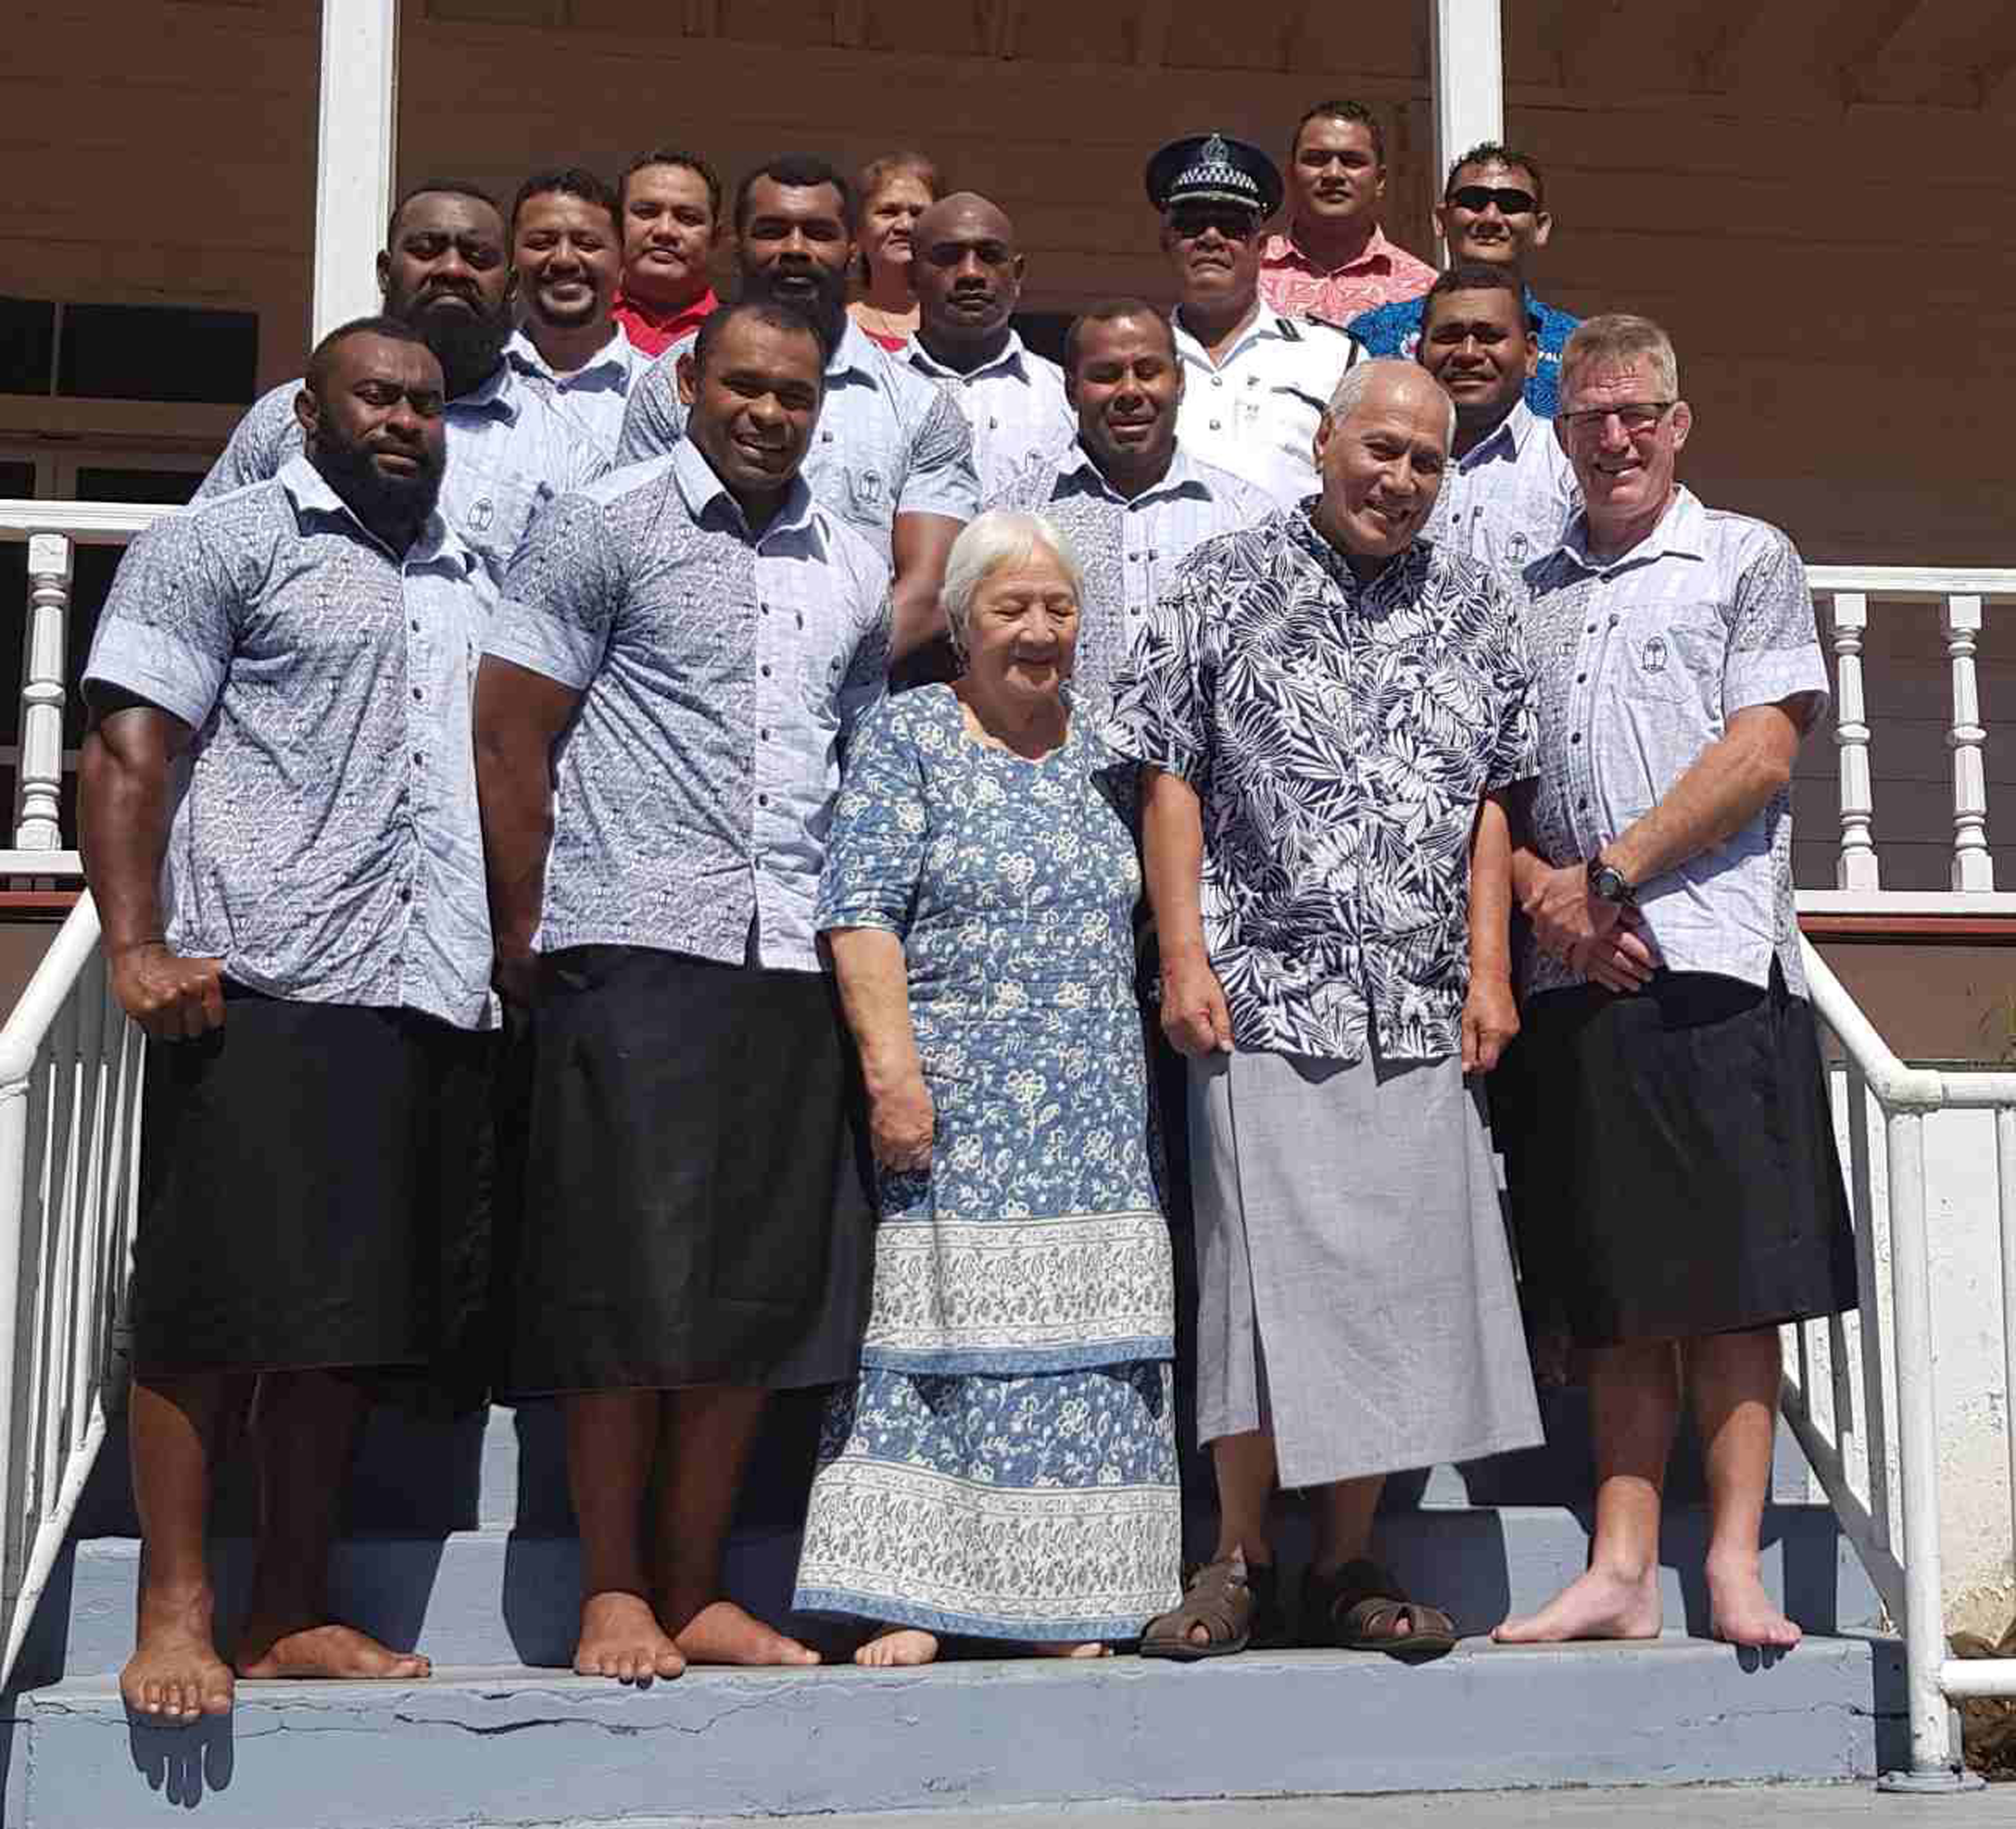 Samoa's Head of State Tui Atua Tupua Tamasese Efi (front, fourth from left) and wife Masiofo Filifilia(front, third from left) with some of the members of the Vodafone Flying Fijians team and coaching staff at their residence in Apia on July 12, 2017. Photo: FRU Media